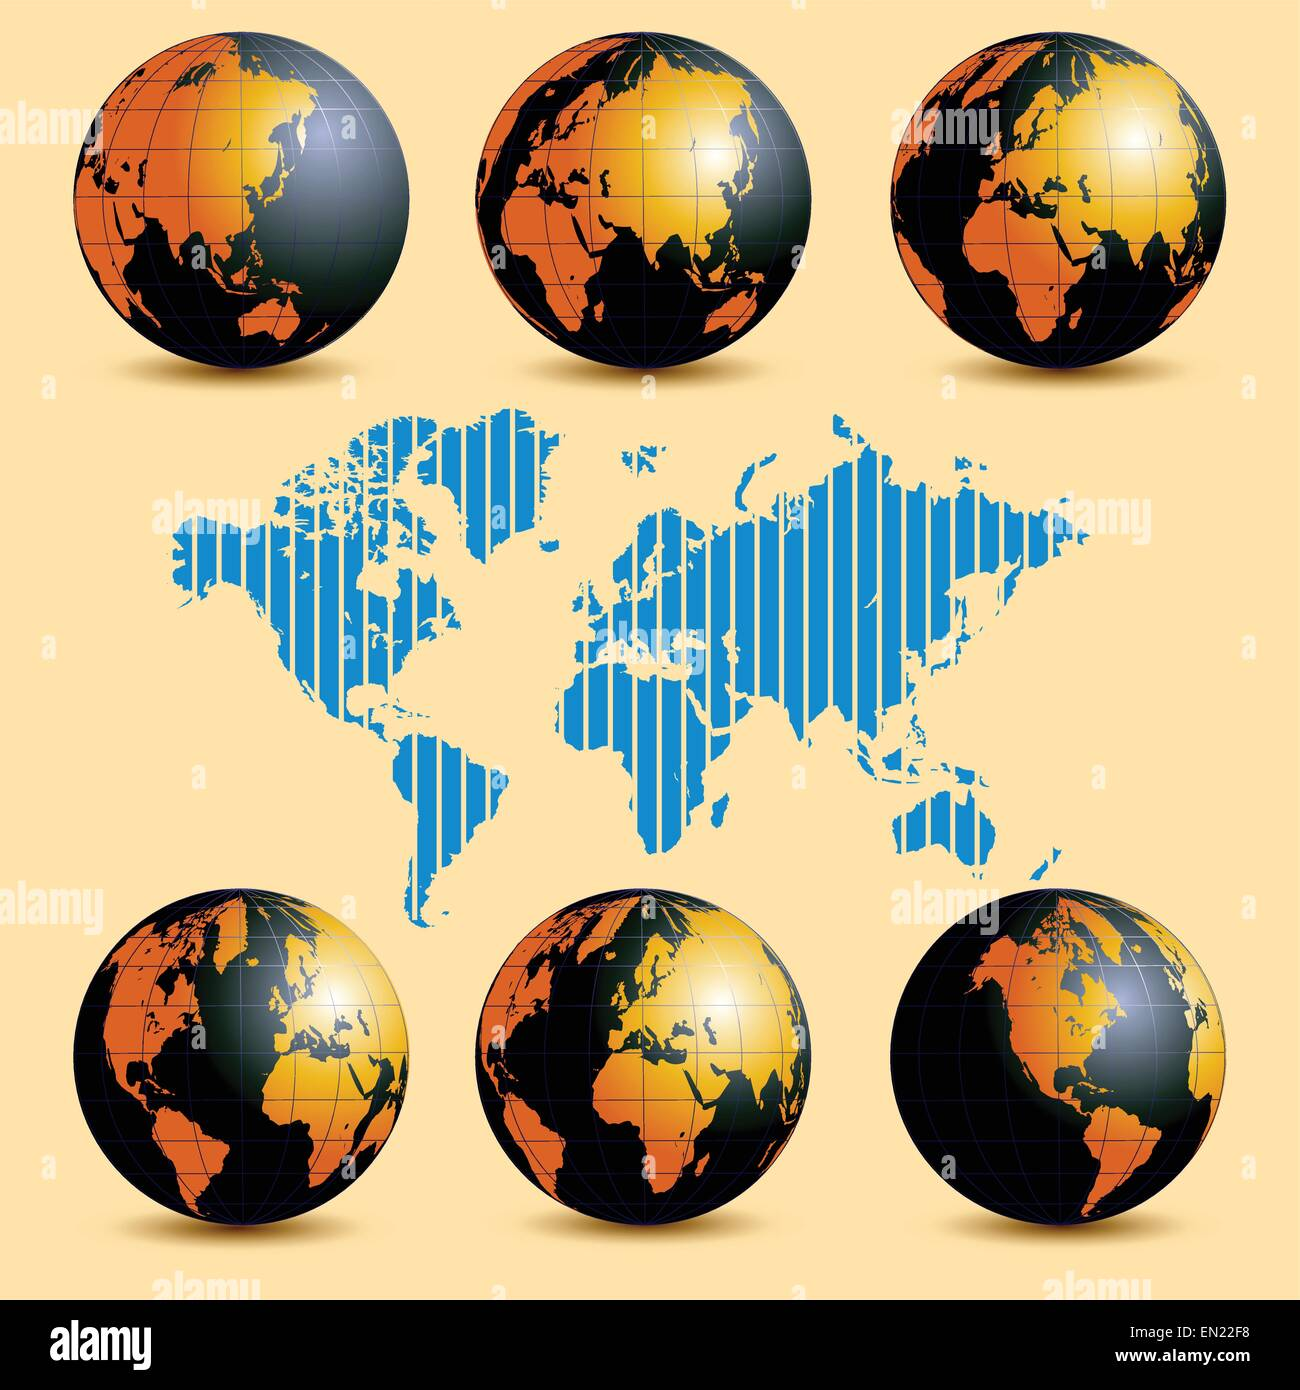 Earth rotation and map with time zones. Vector illustration - Stock Image